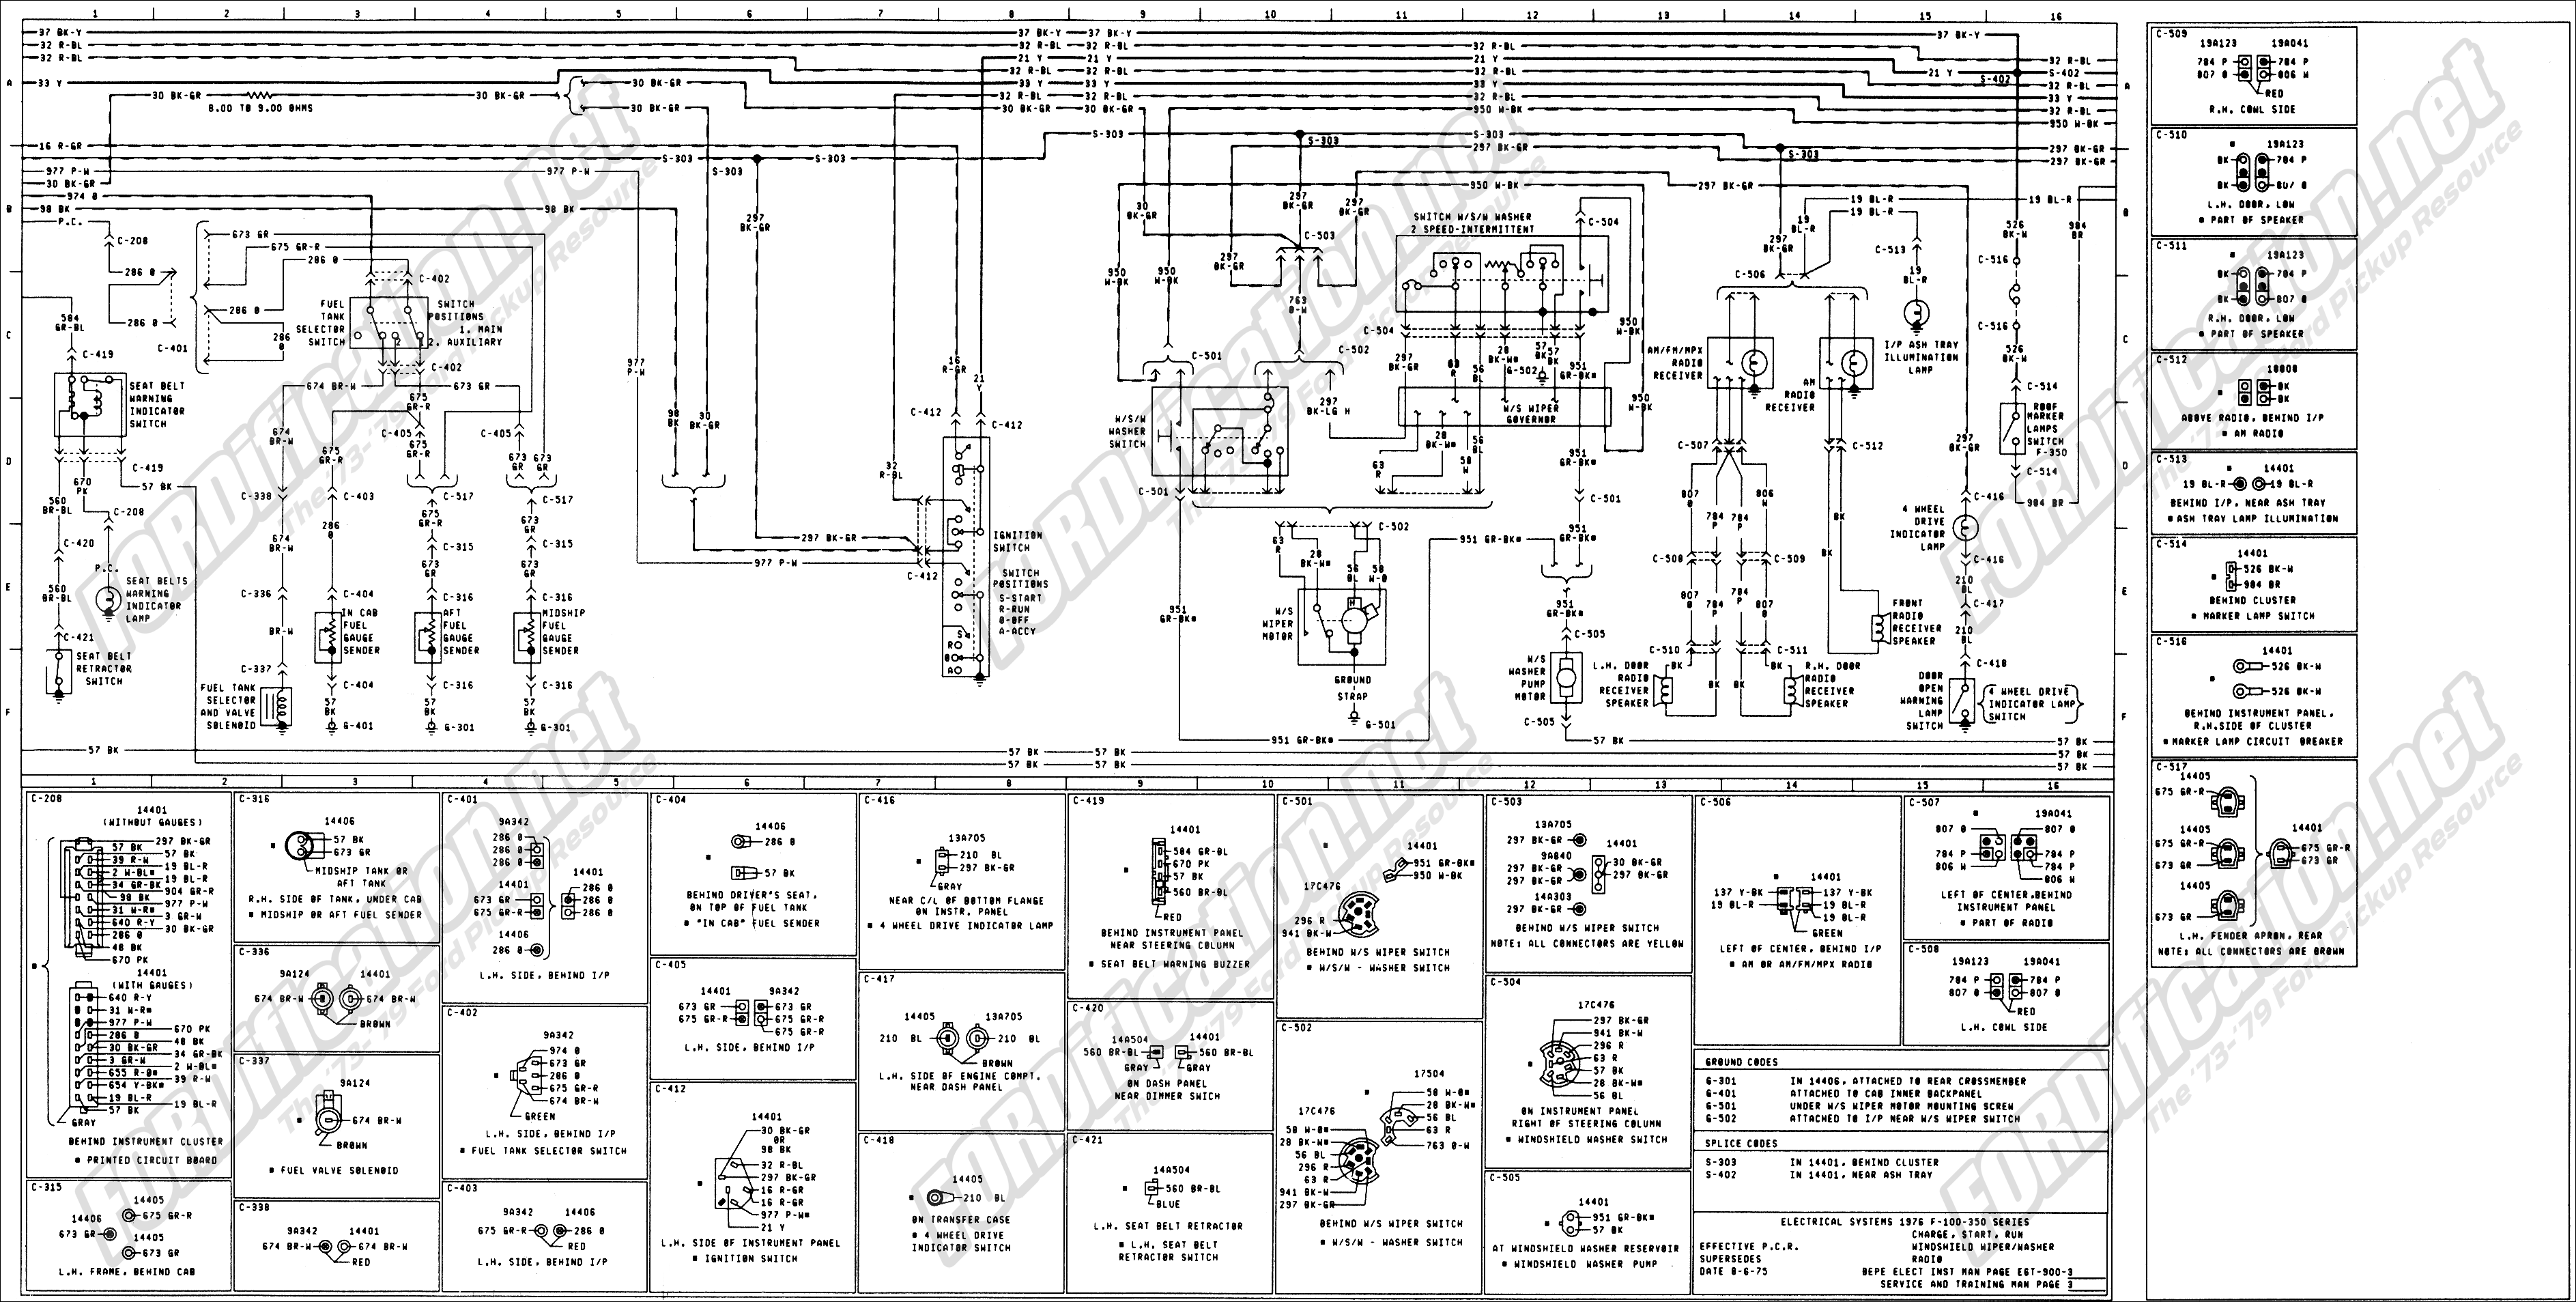 Chevy Duramax Engine Diagram moreover 1997 Ford F150 V6 Engine Coolant Temp Sensor Located Diagram Intended For Ford 4 2l V6 Engine Diagram furthermore 237324 1975 Ford F150 Ranger Restoration 2 moreover Jeep Liberty 3 7l Engine Diagram in addition Diagram For 1 6 Chevy Aveo Get Free Image. on ford f 150 fuse box